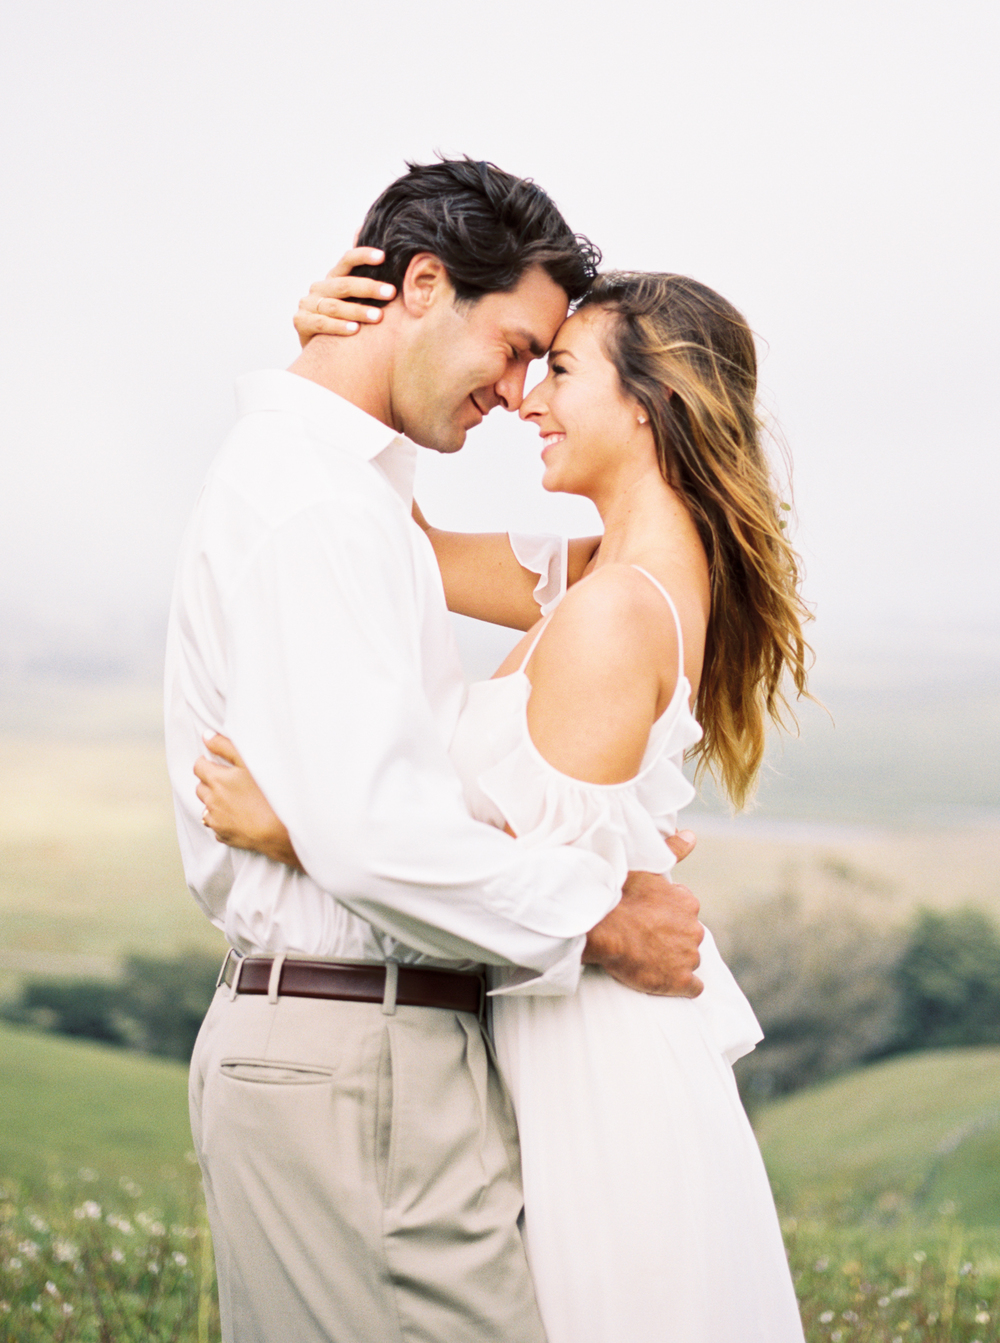 Danford-Photography-Bozeman-Montana-California-Wedding-Engagement-Photographer-1.jpg